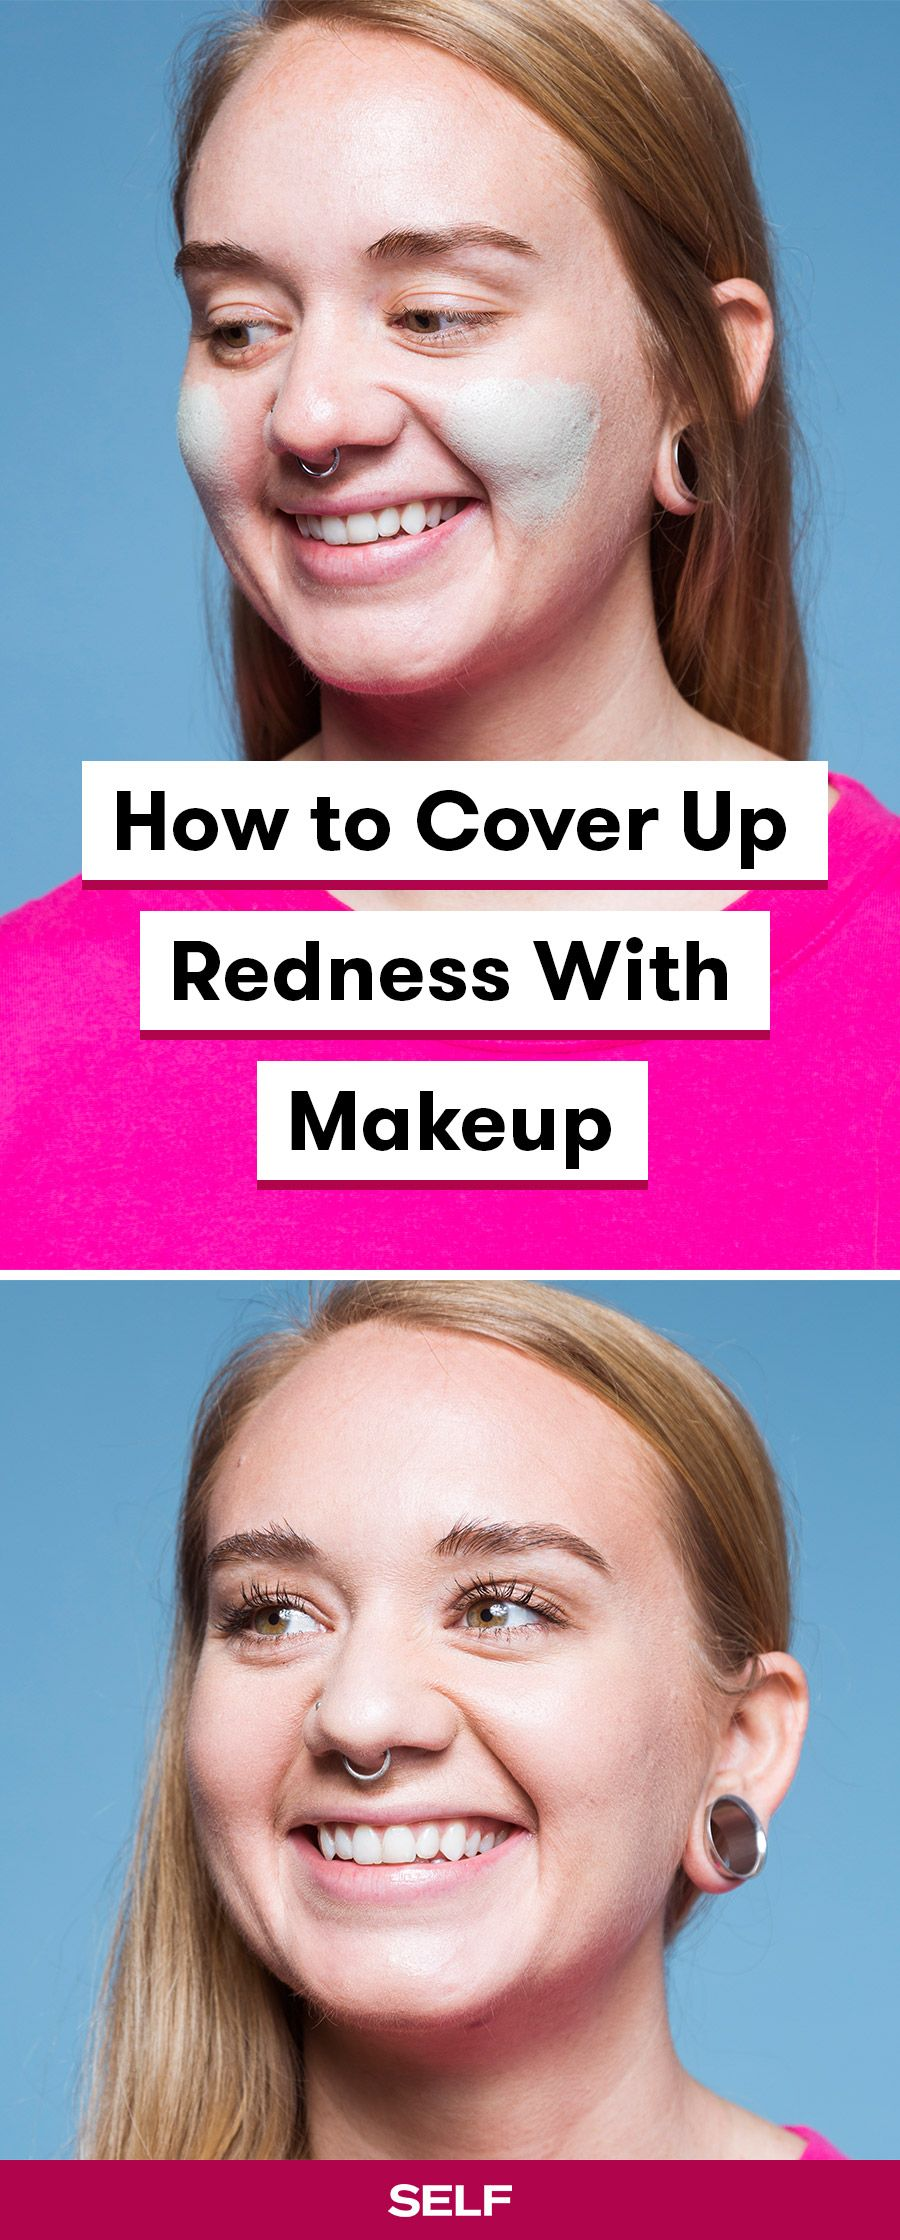 An Easy 4Step Tutorial to Cover Up Redness With Makeup